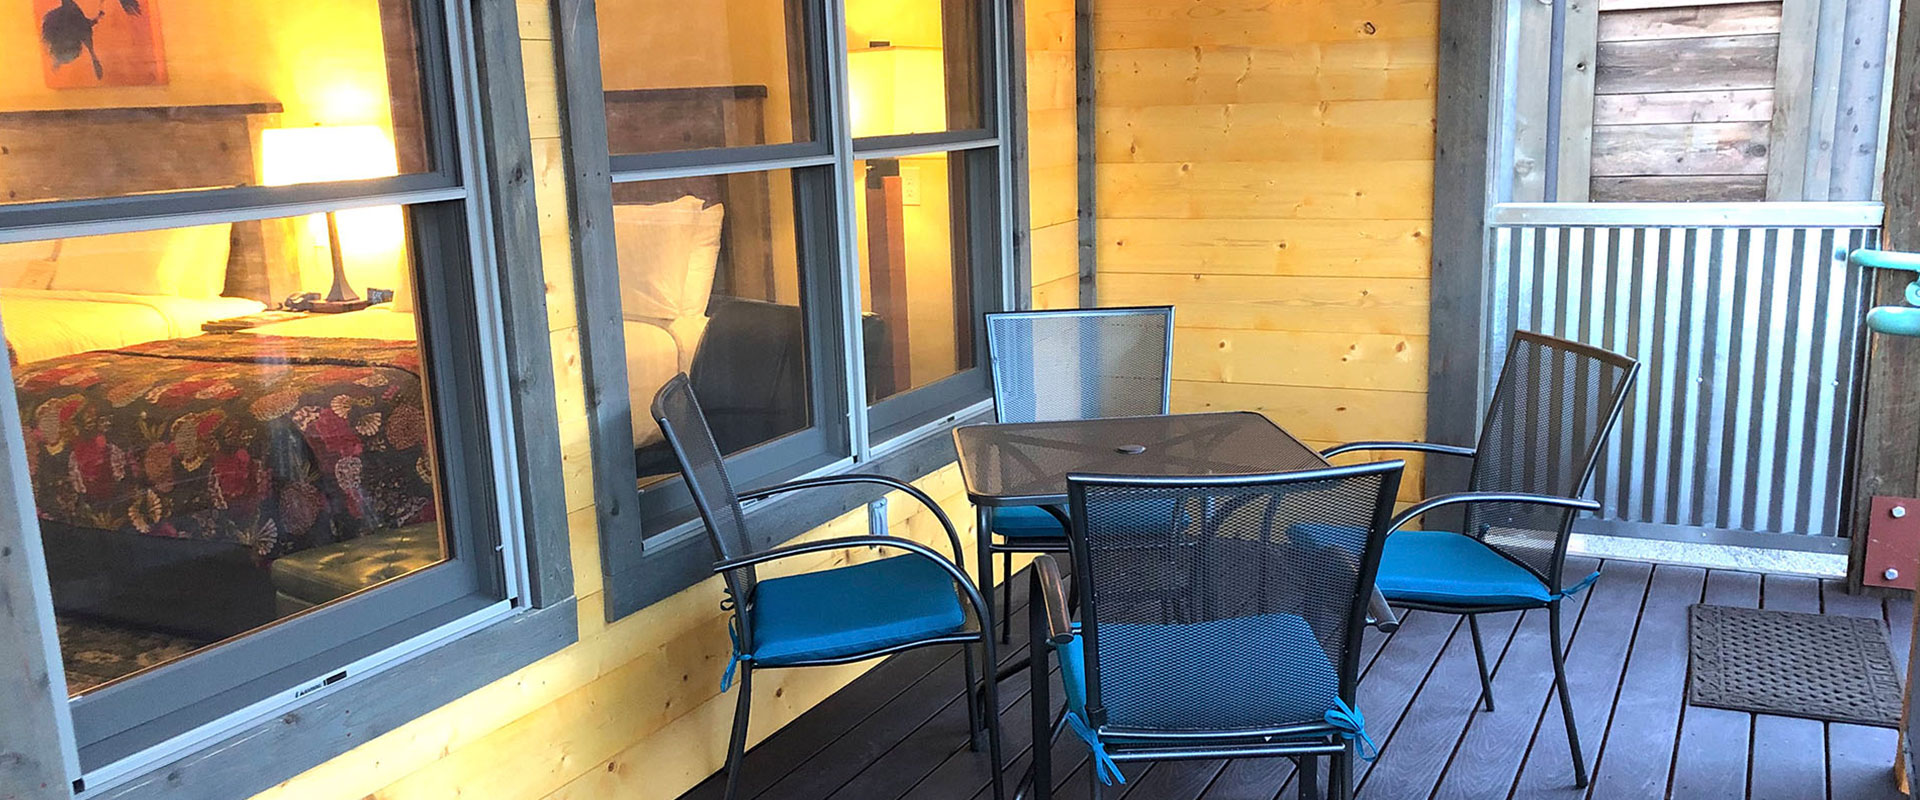 The outdoor space of a housing unit on Moab Springs Ranch has sturdy metal chairs and table, a black woodburning fireplace, barbecue and corrugated metal enclosure.